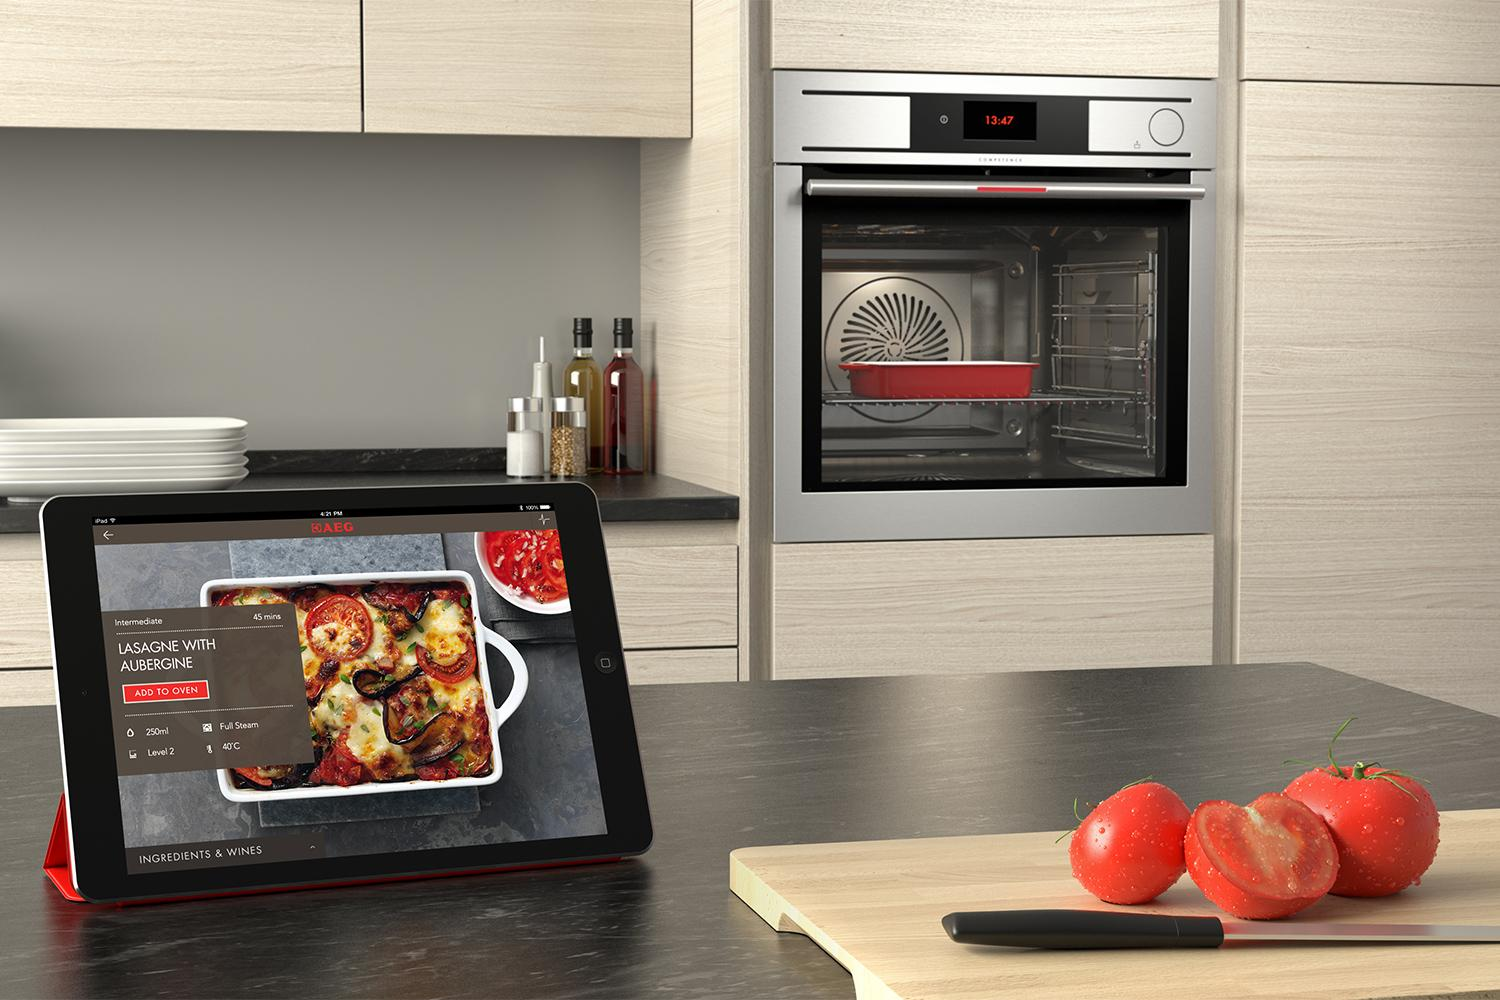 Watch What You Eat New Electrolux Oven Has A Cam To